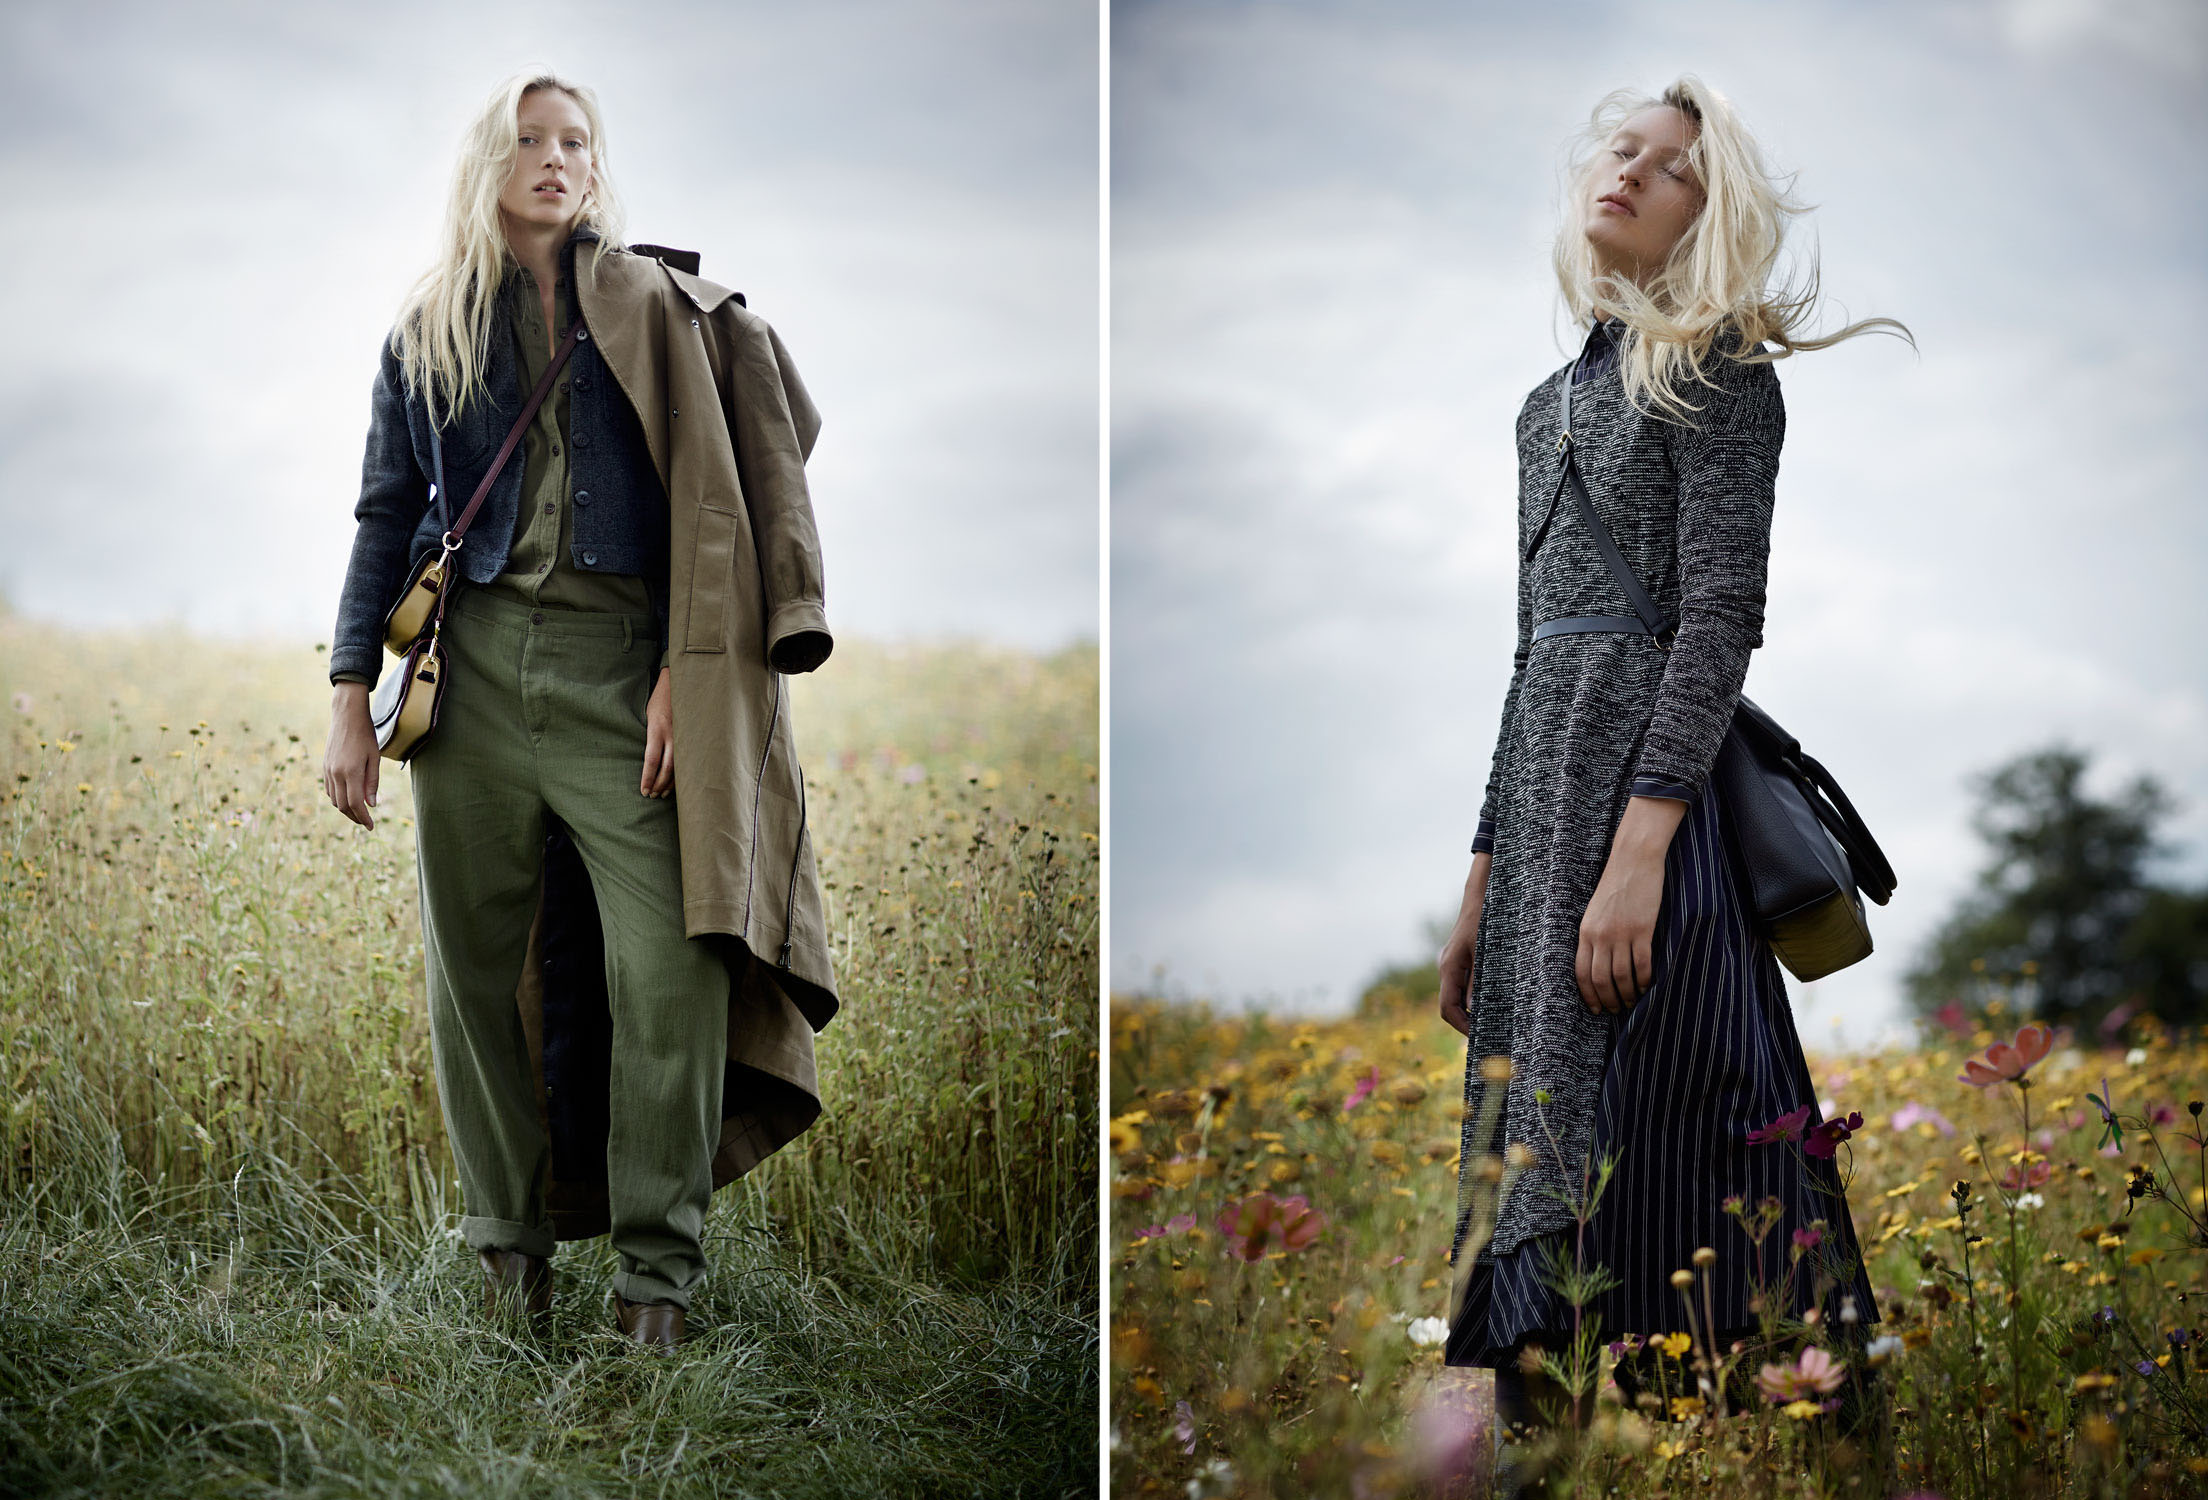 Telegraph Fashion story by Charlie Harrington. Photography Kate Davis Macleod.